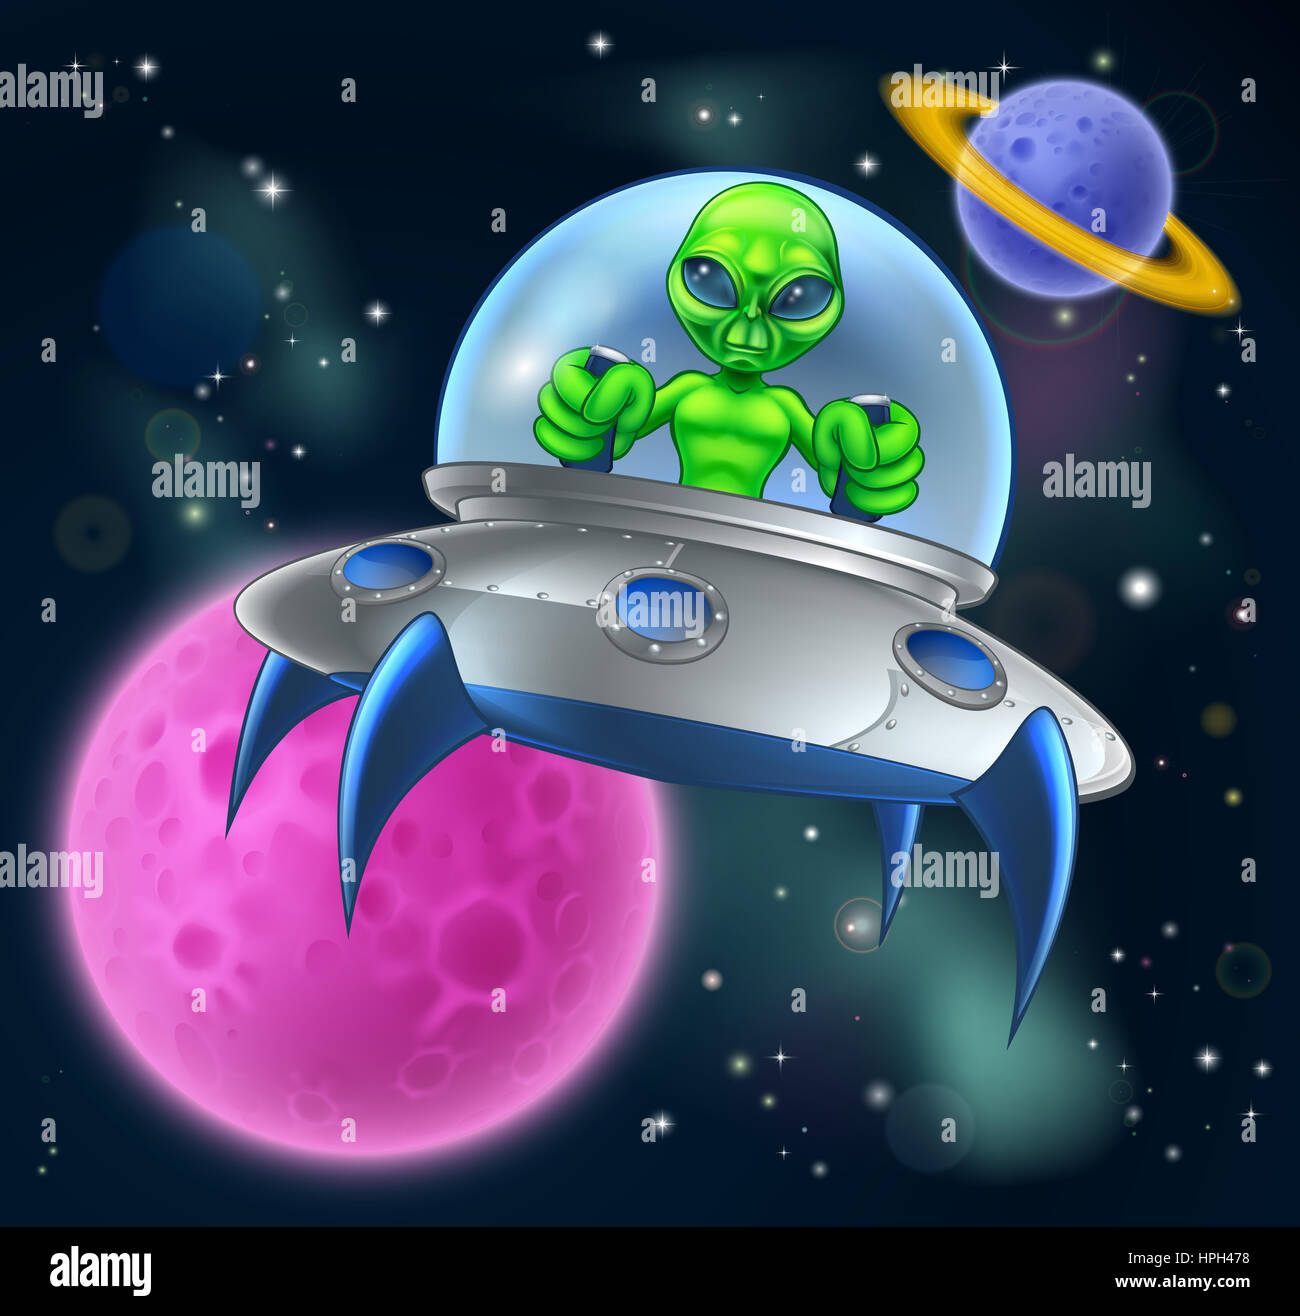 Cartoon alien spaceship or flying saucer in space scene for Flying spaces